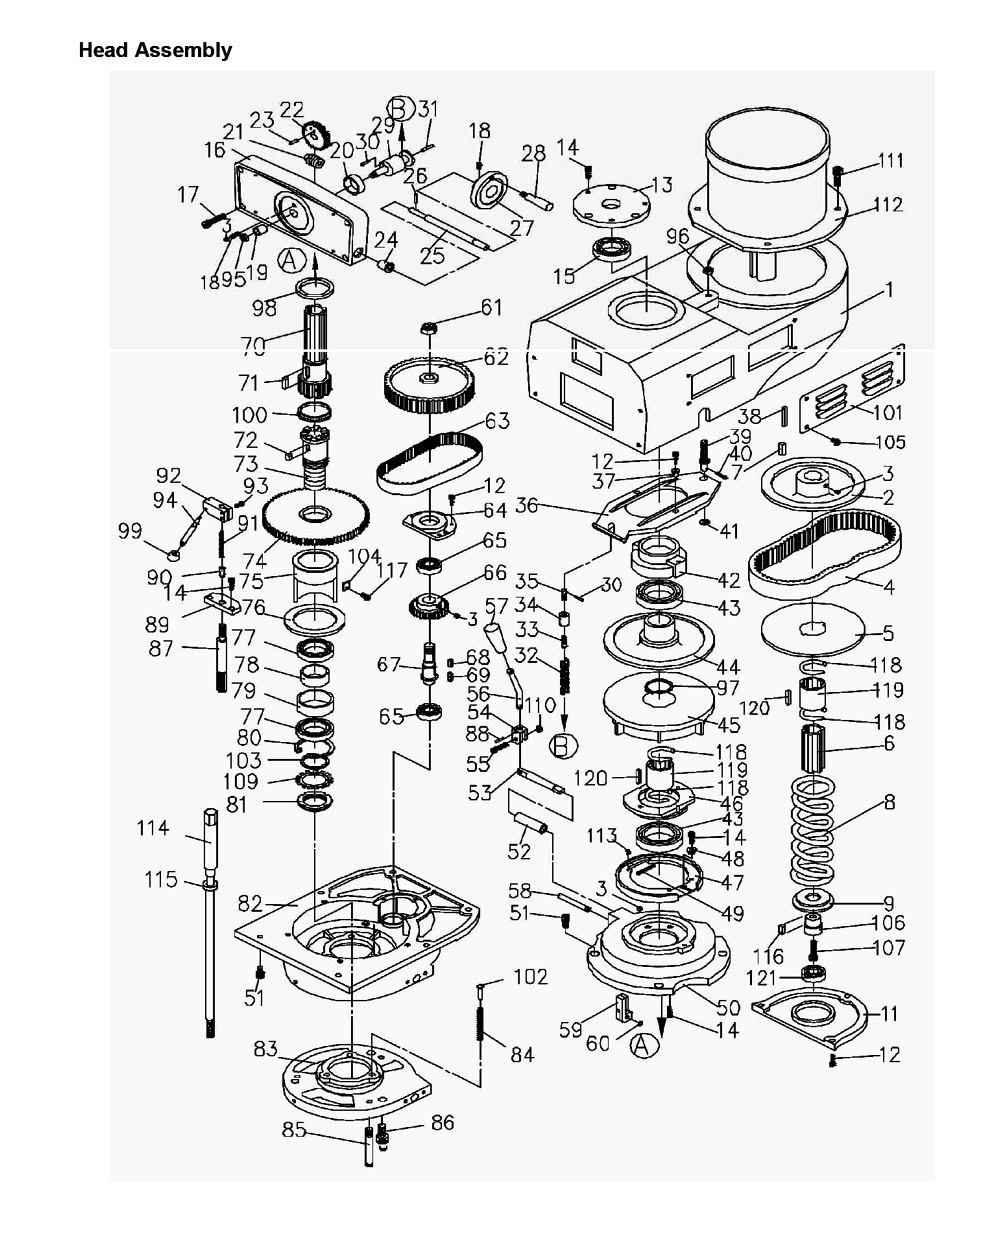 Bridgeport Milling Machine Lubrication Diagram Jet Milling